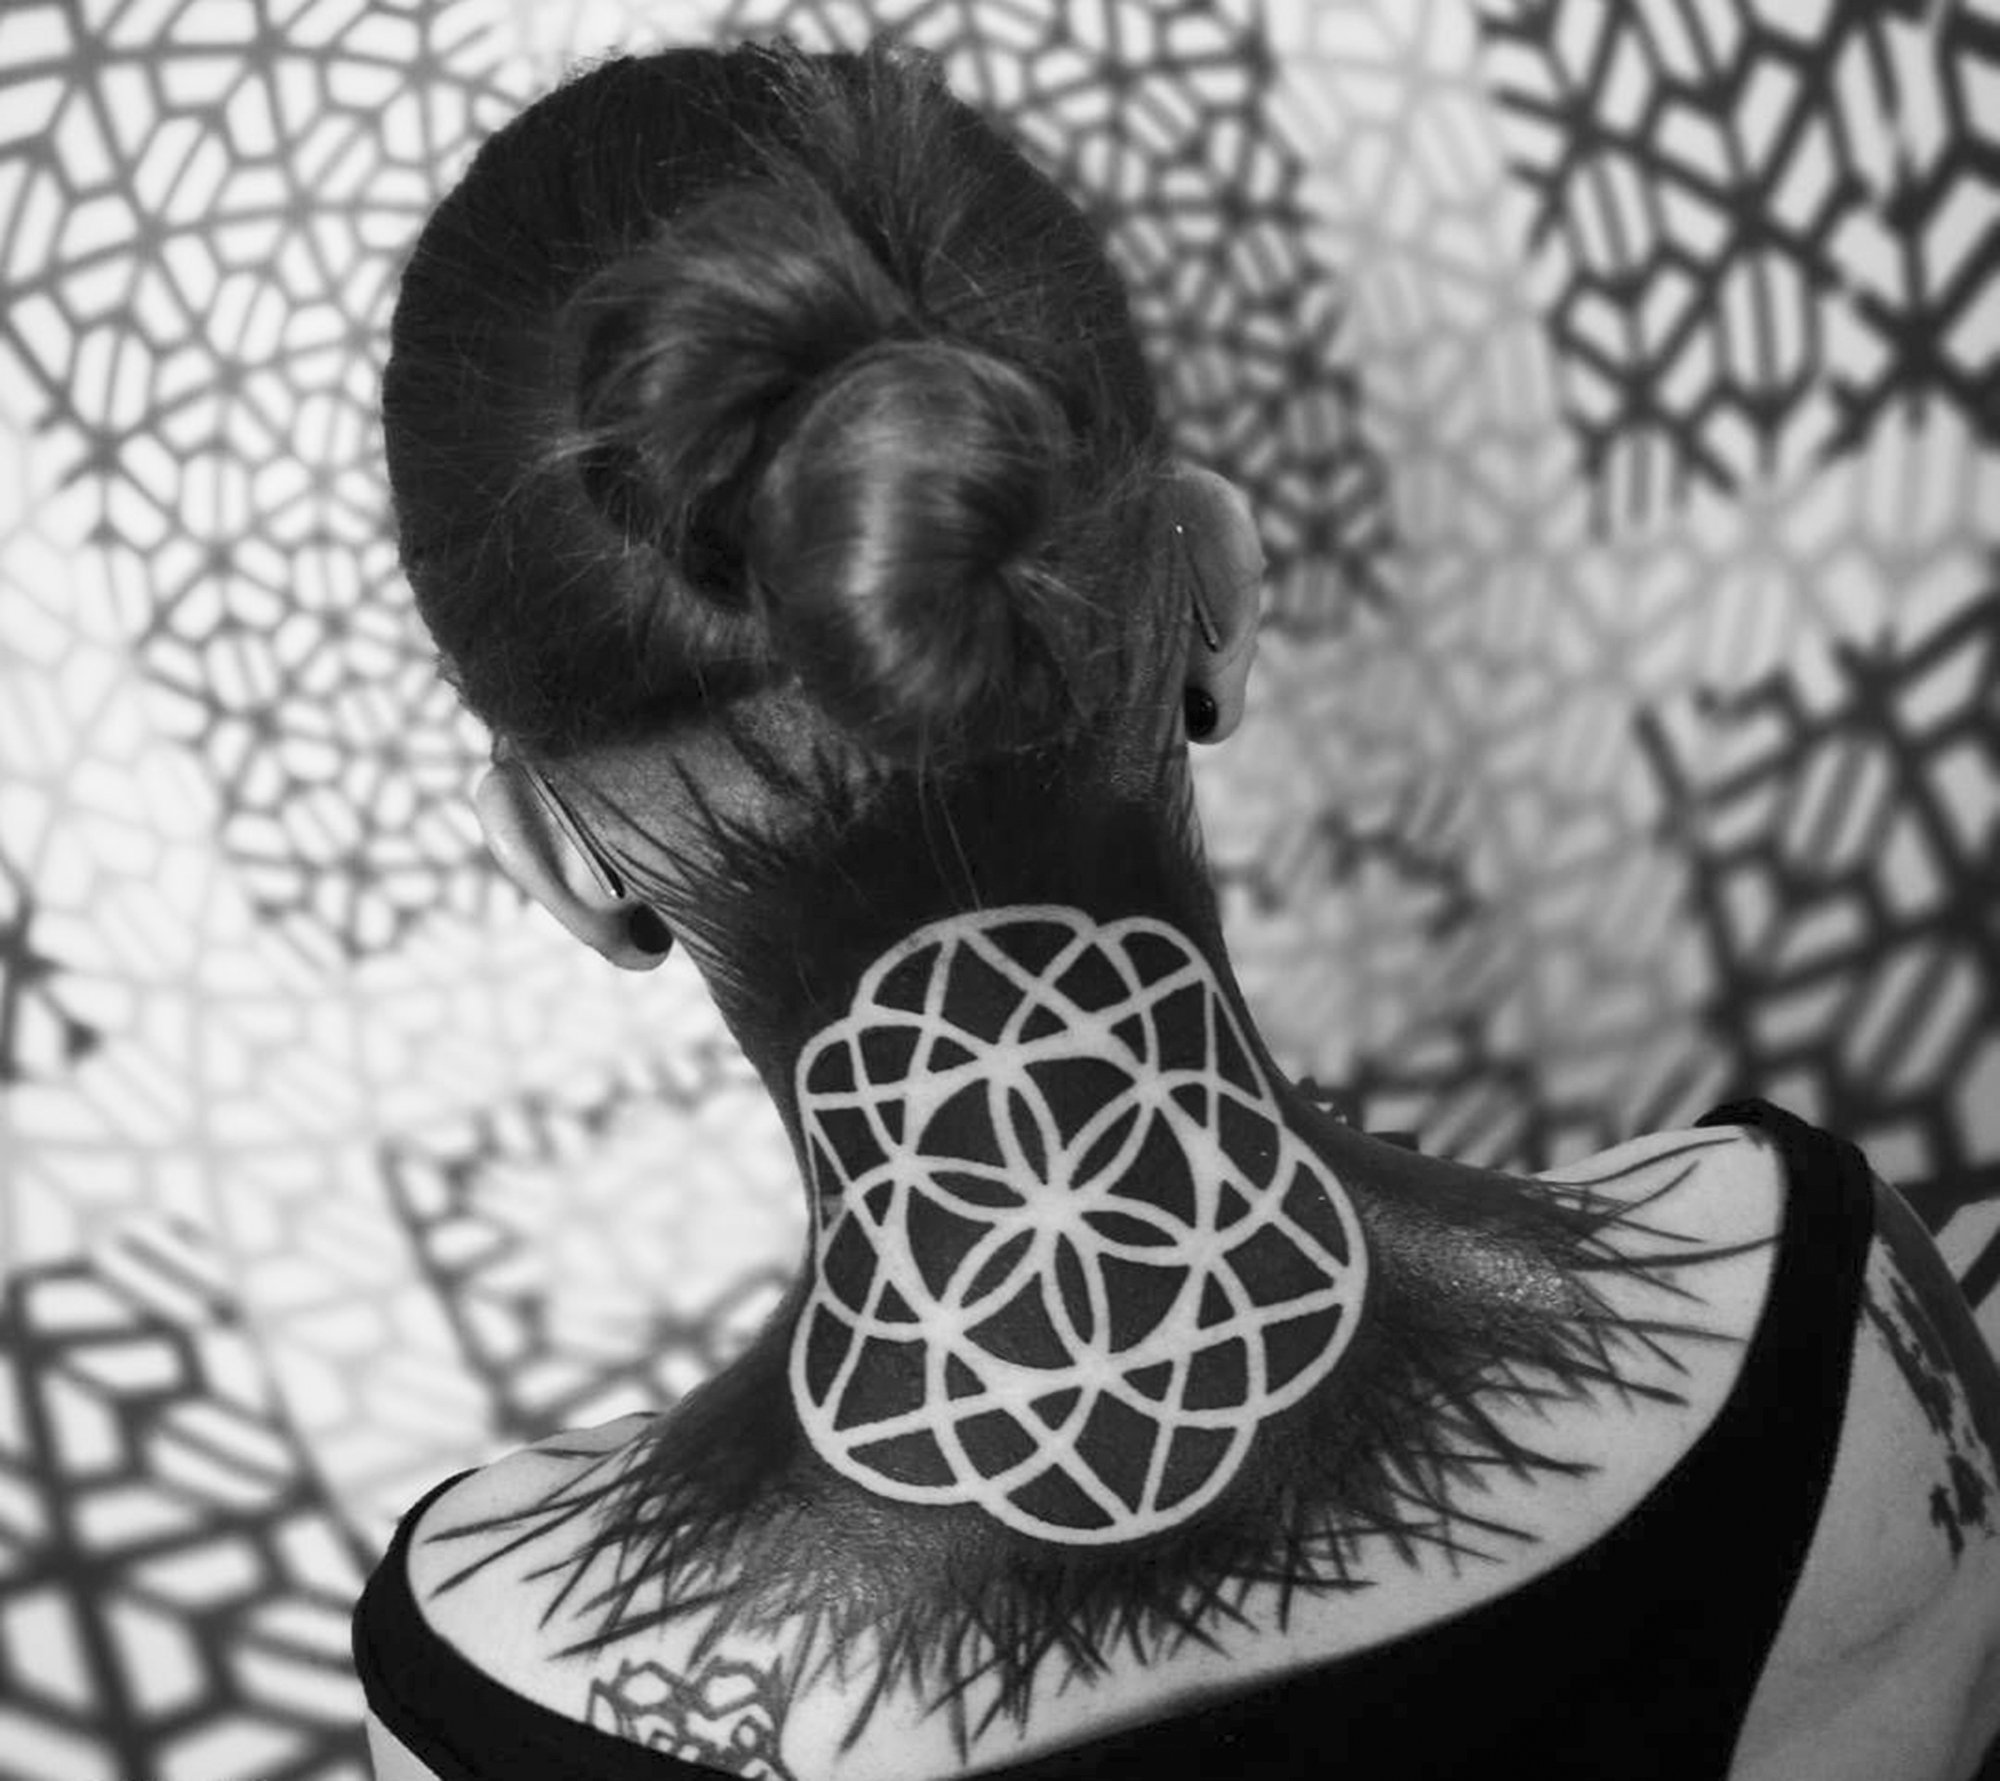 blackwork neck tattoo by 3kreuze